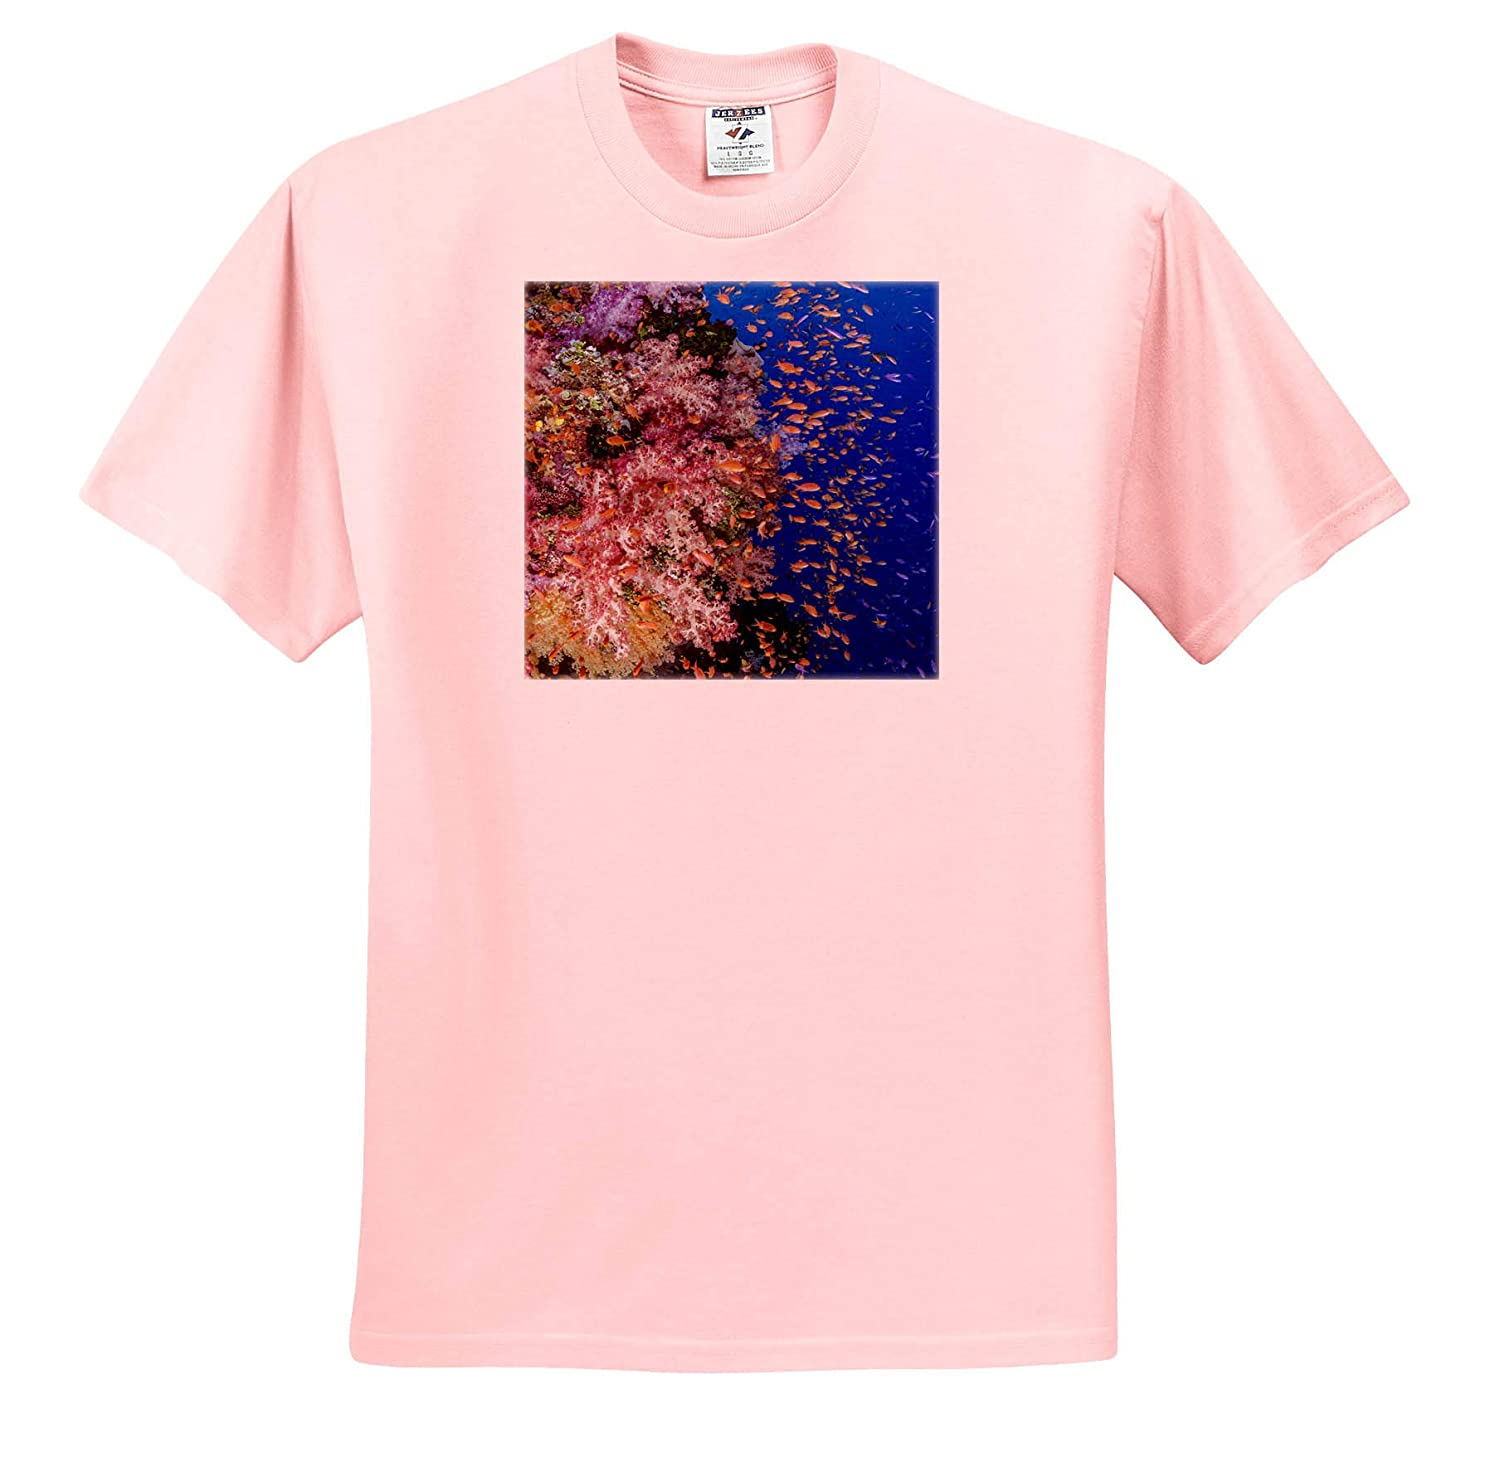 Reef with Coral and Anthias - Adult T-Shirt XL 3dRose Danita Delimont ts/_314016 Underwater Fiji